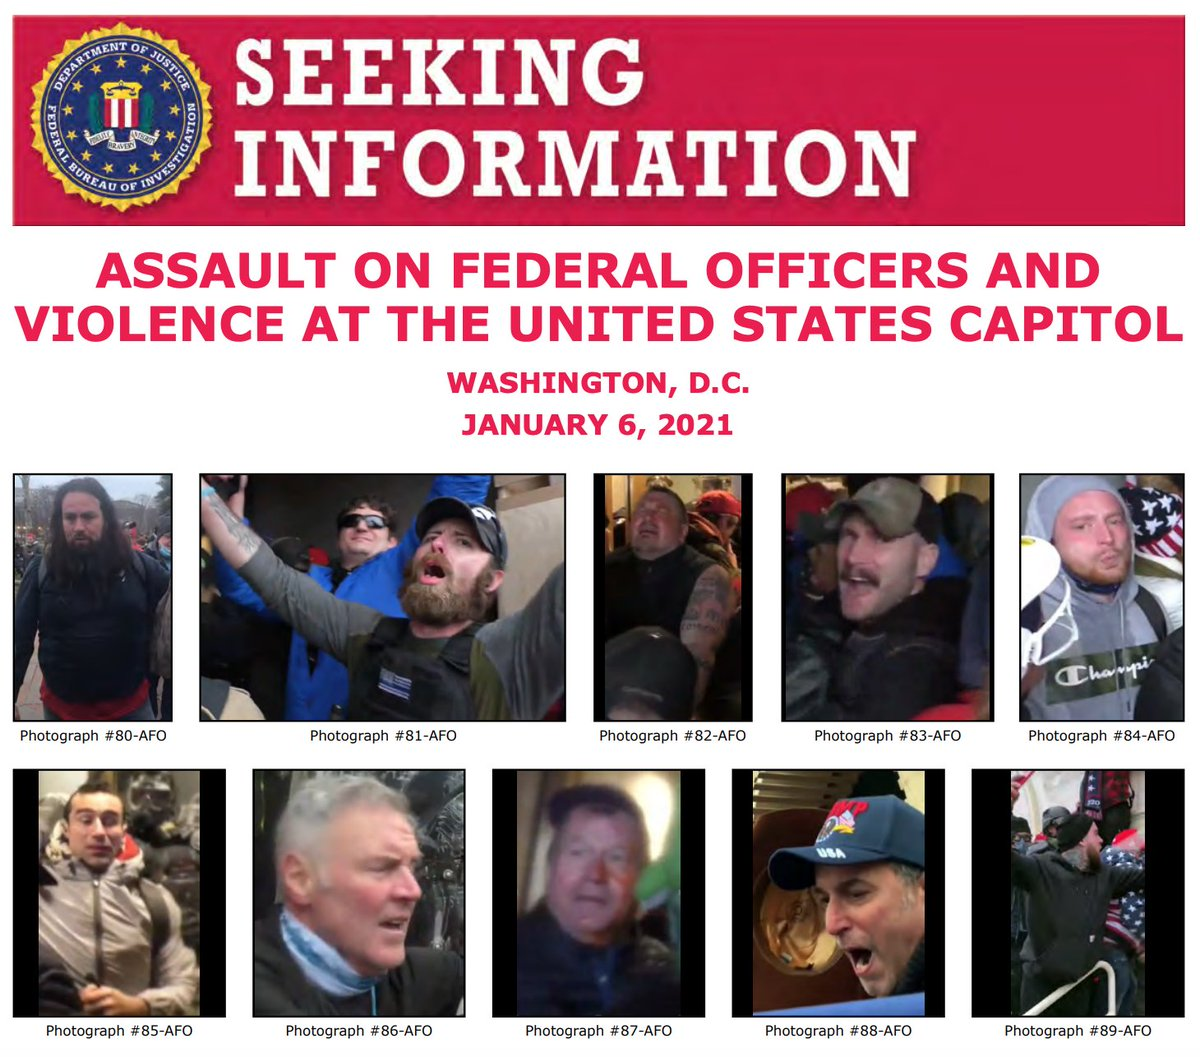 The #FBI continues to search for the individuals involved in the violence at the U.S. Capitol on January 6. We ask for the public's help in identifying people depicted in our new poster. If you see someone familiar, submit a tip at .